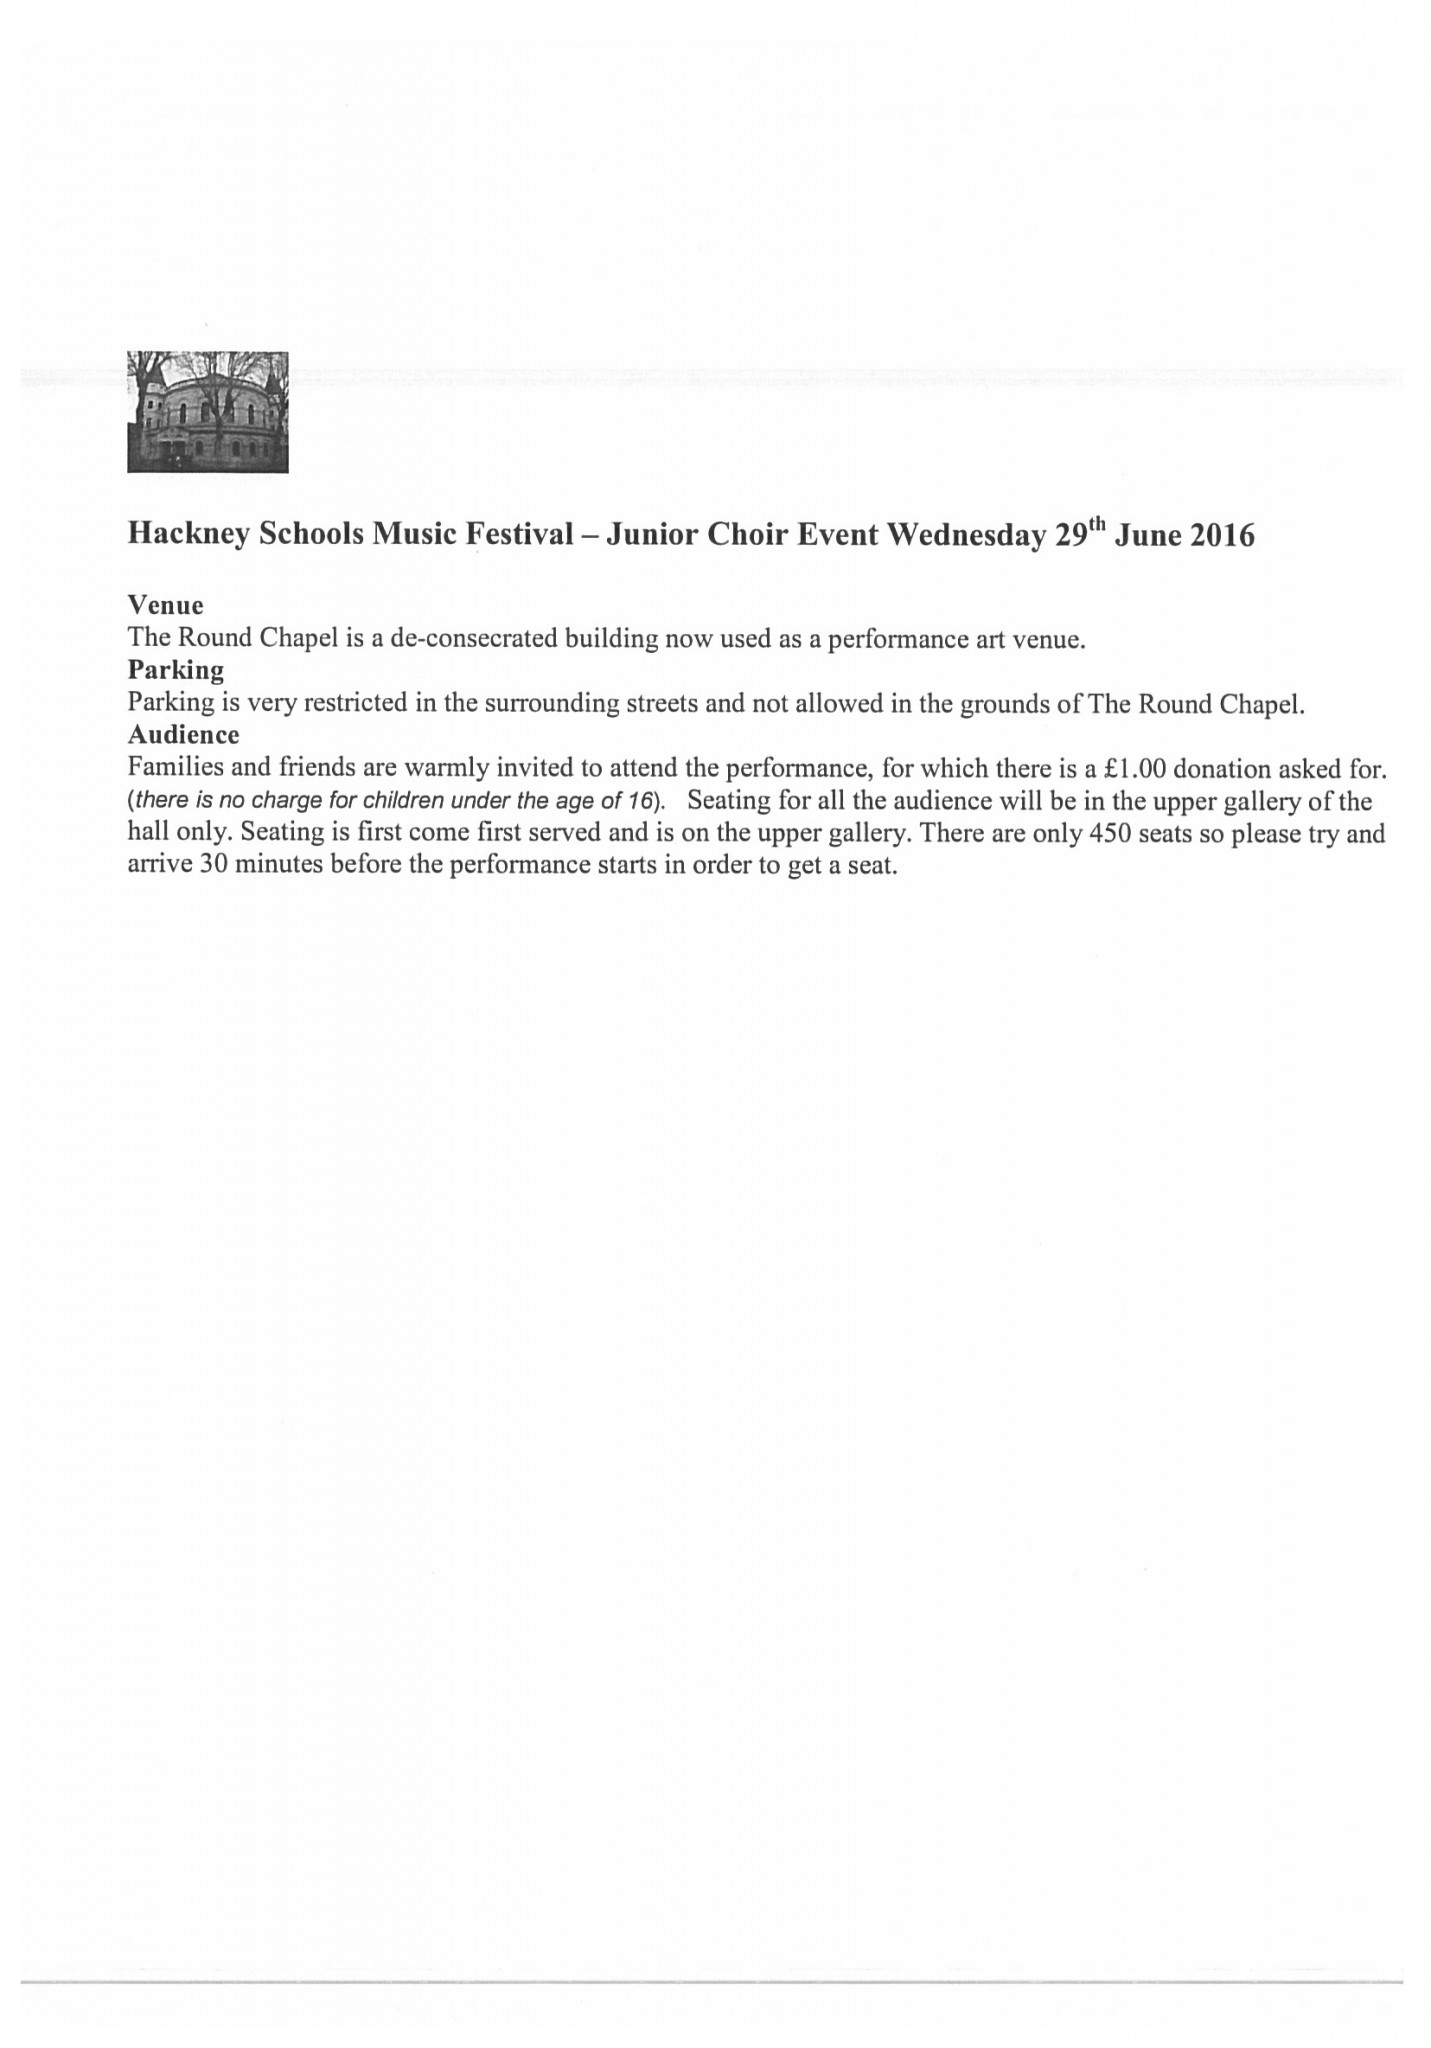 Junior chior music festival (1)